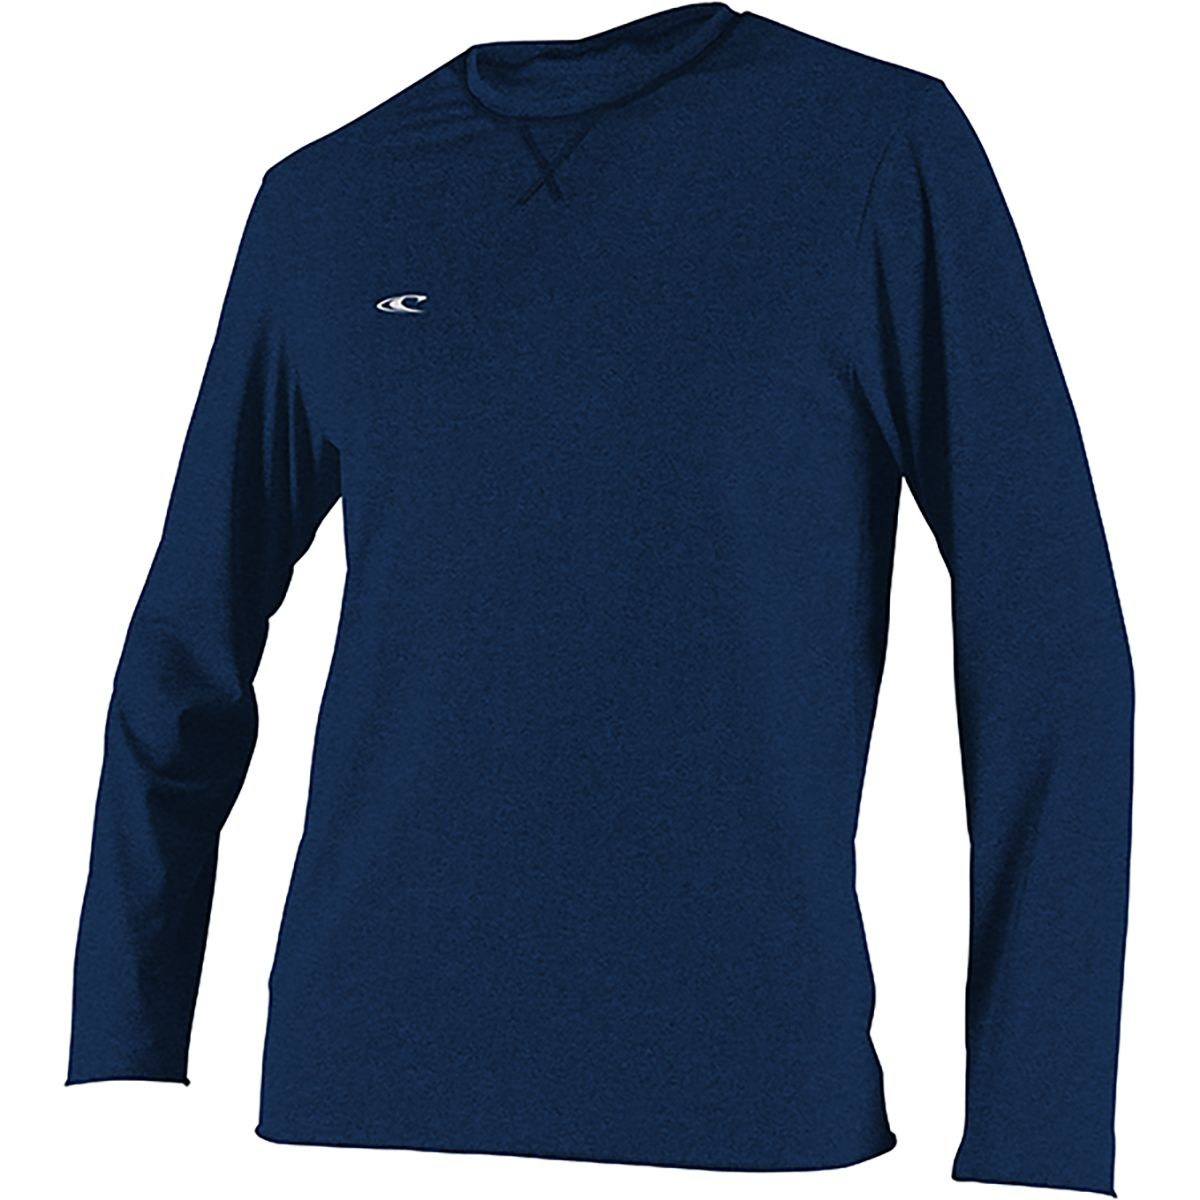 O'neill Men's Hybrid Sun Long-Sleeve Tee - Blue, S